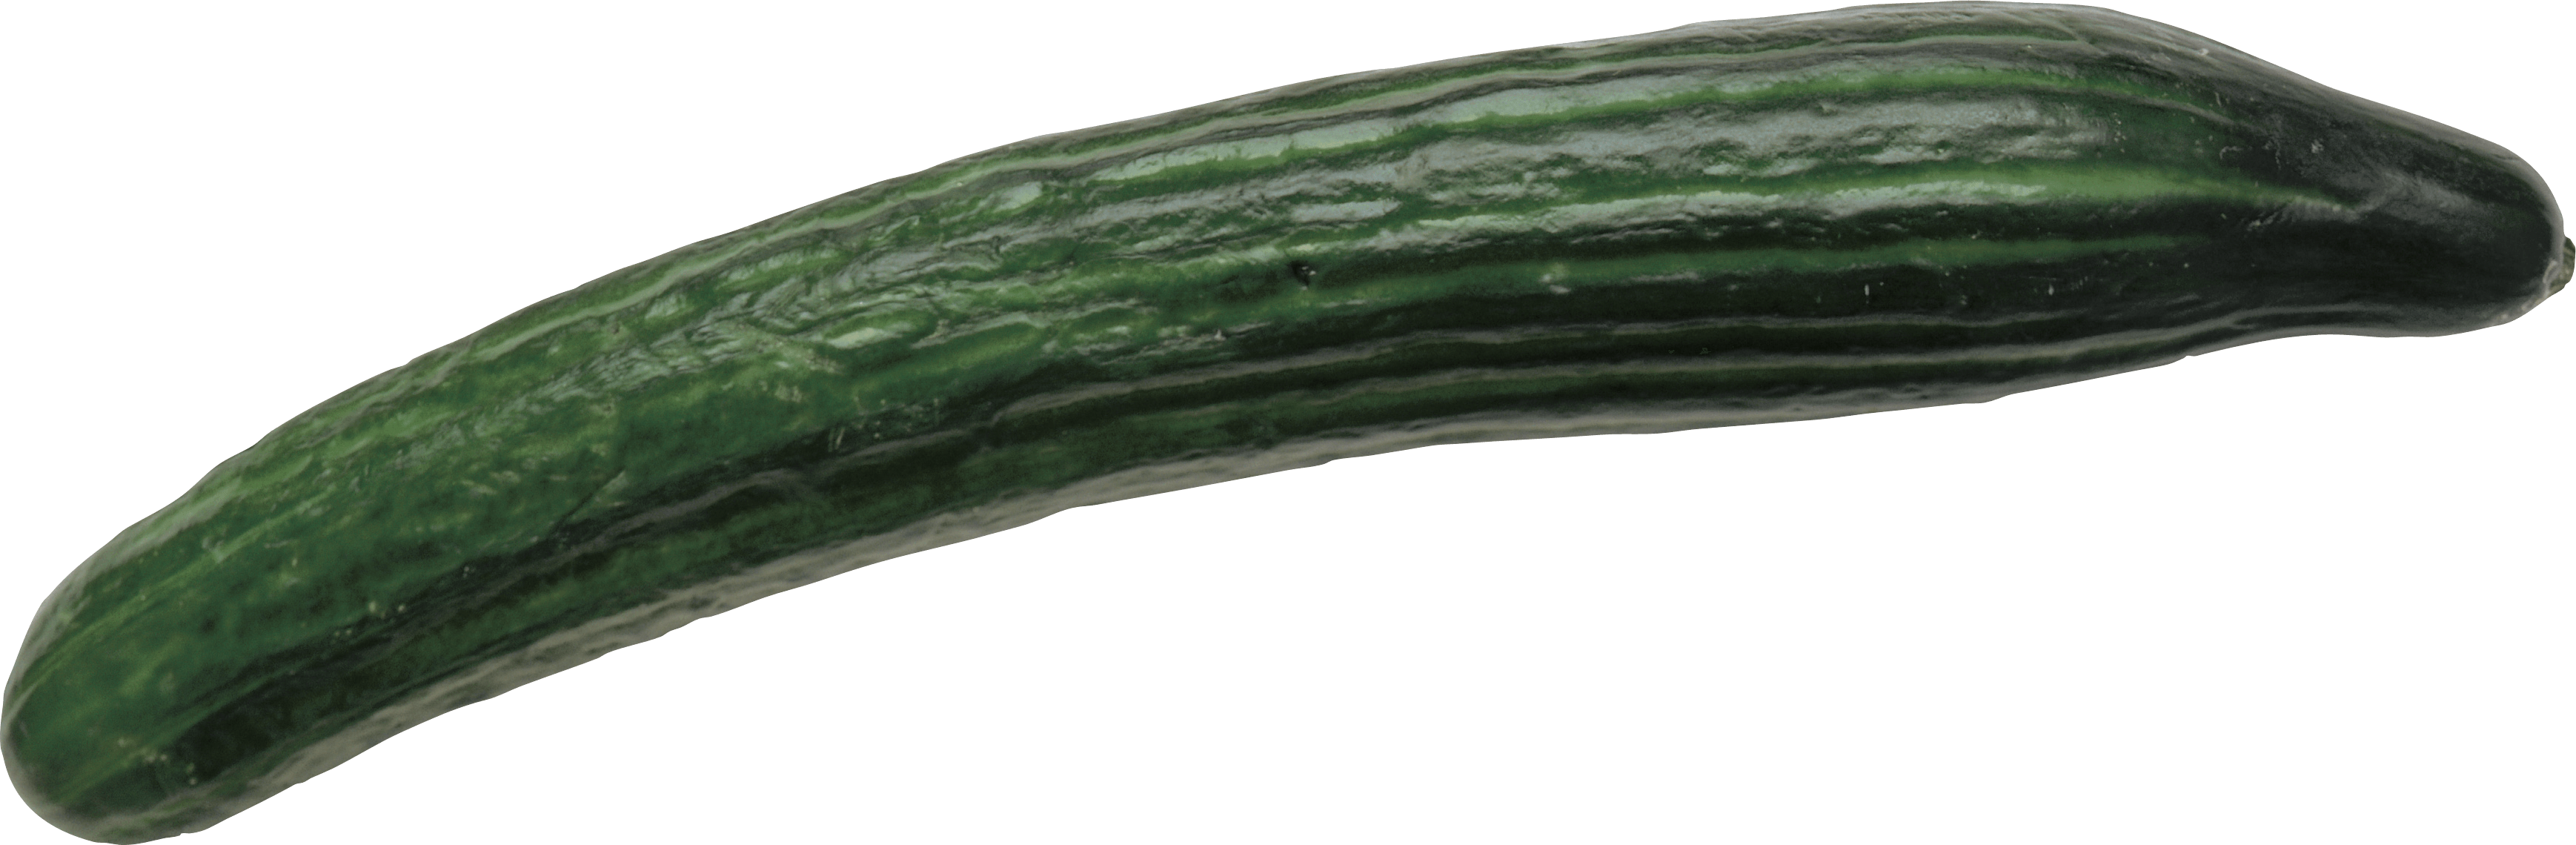 Cucumber Wonderful Picture Image